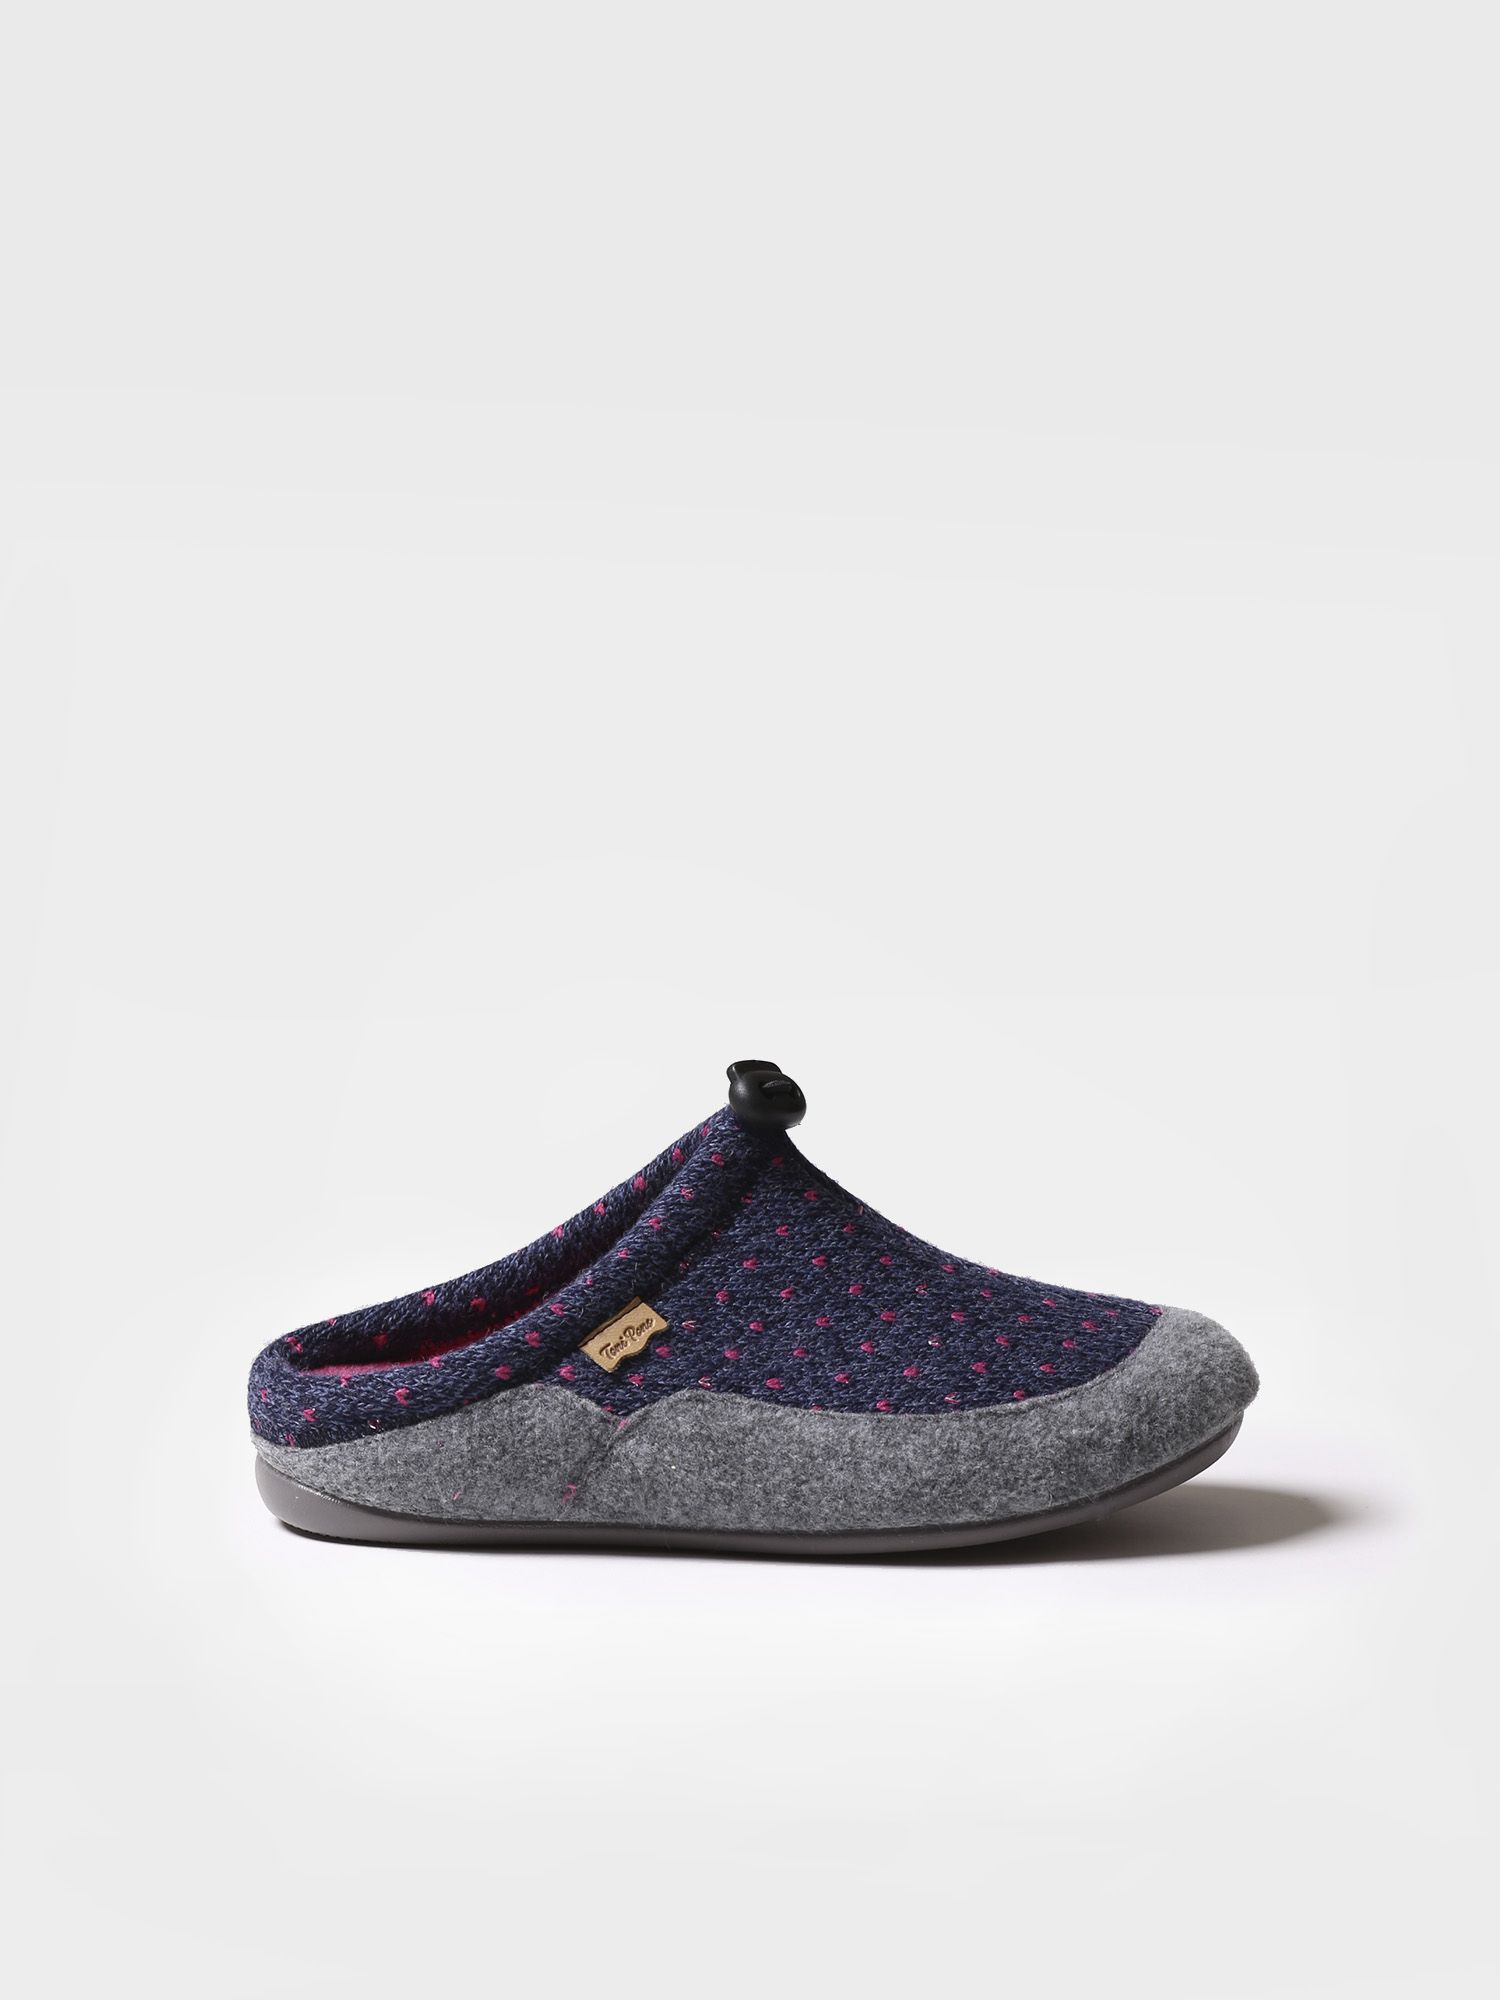 Slipper for women made of felt - MEL-LO